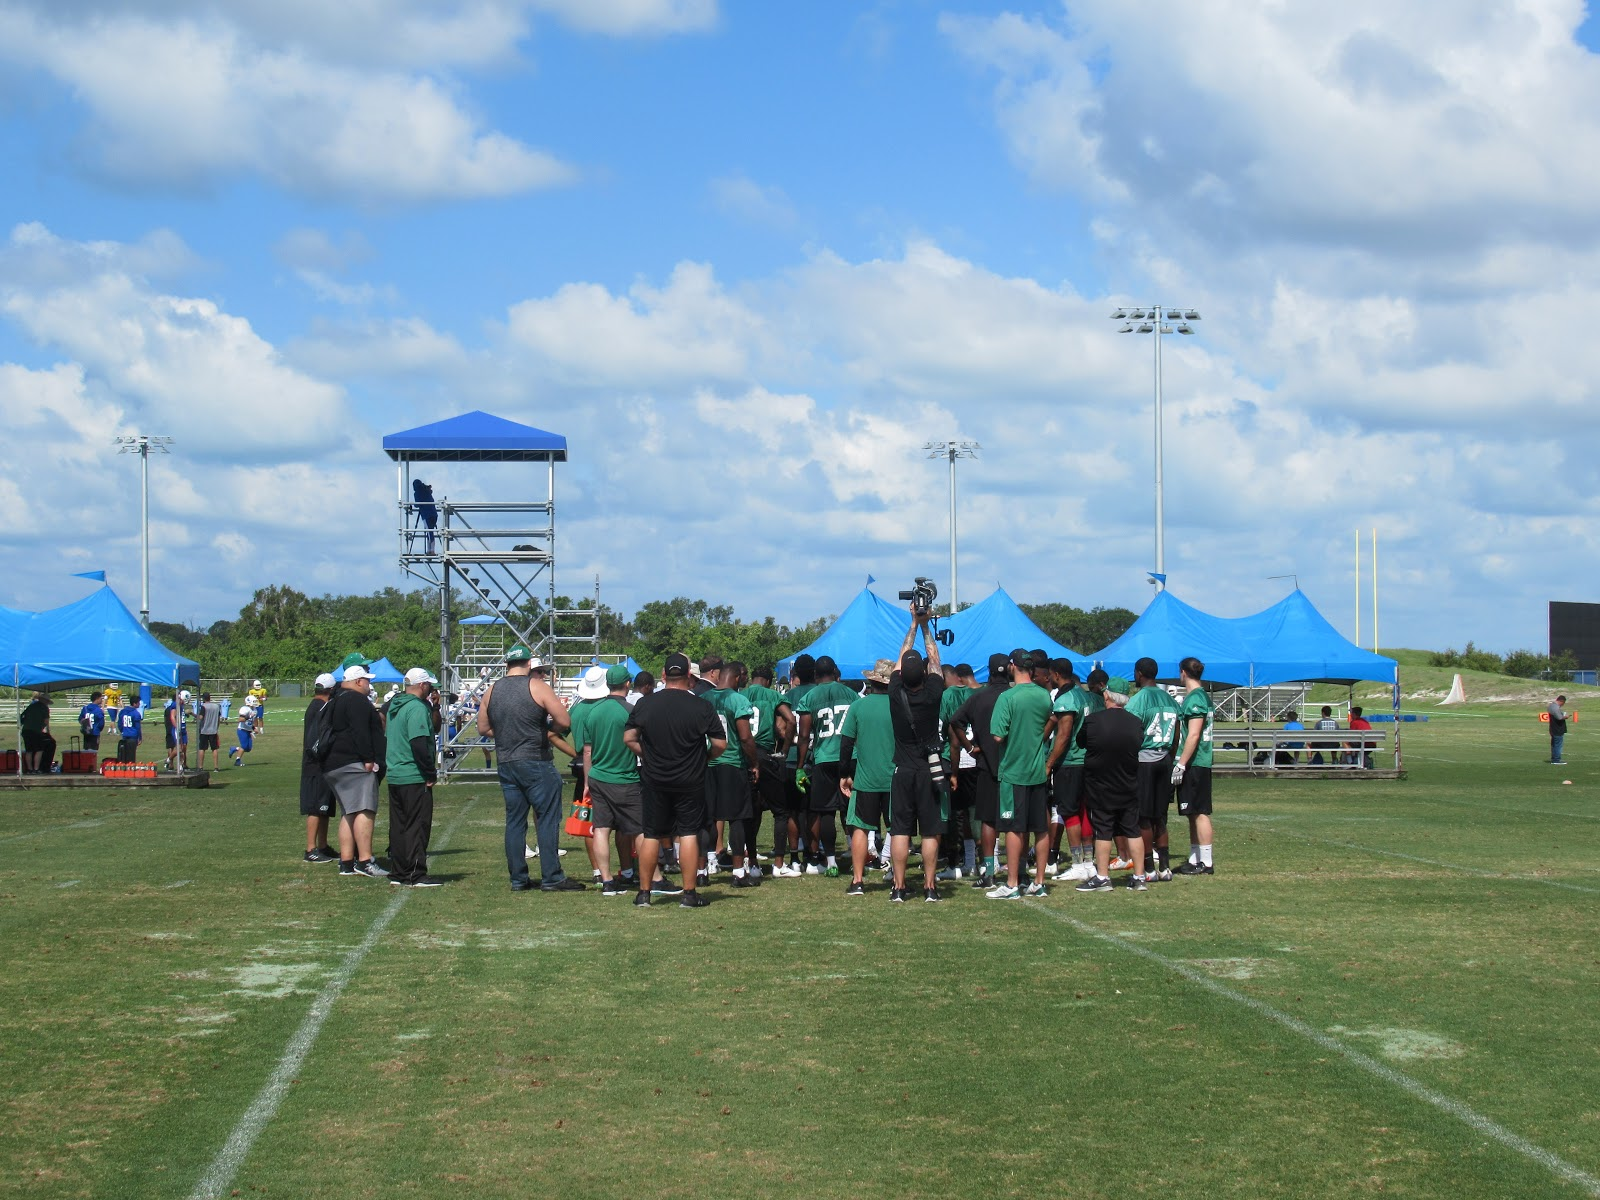 10 Things From Roughriders Florida Minicamp